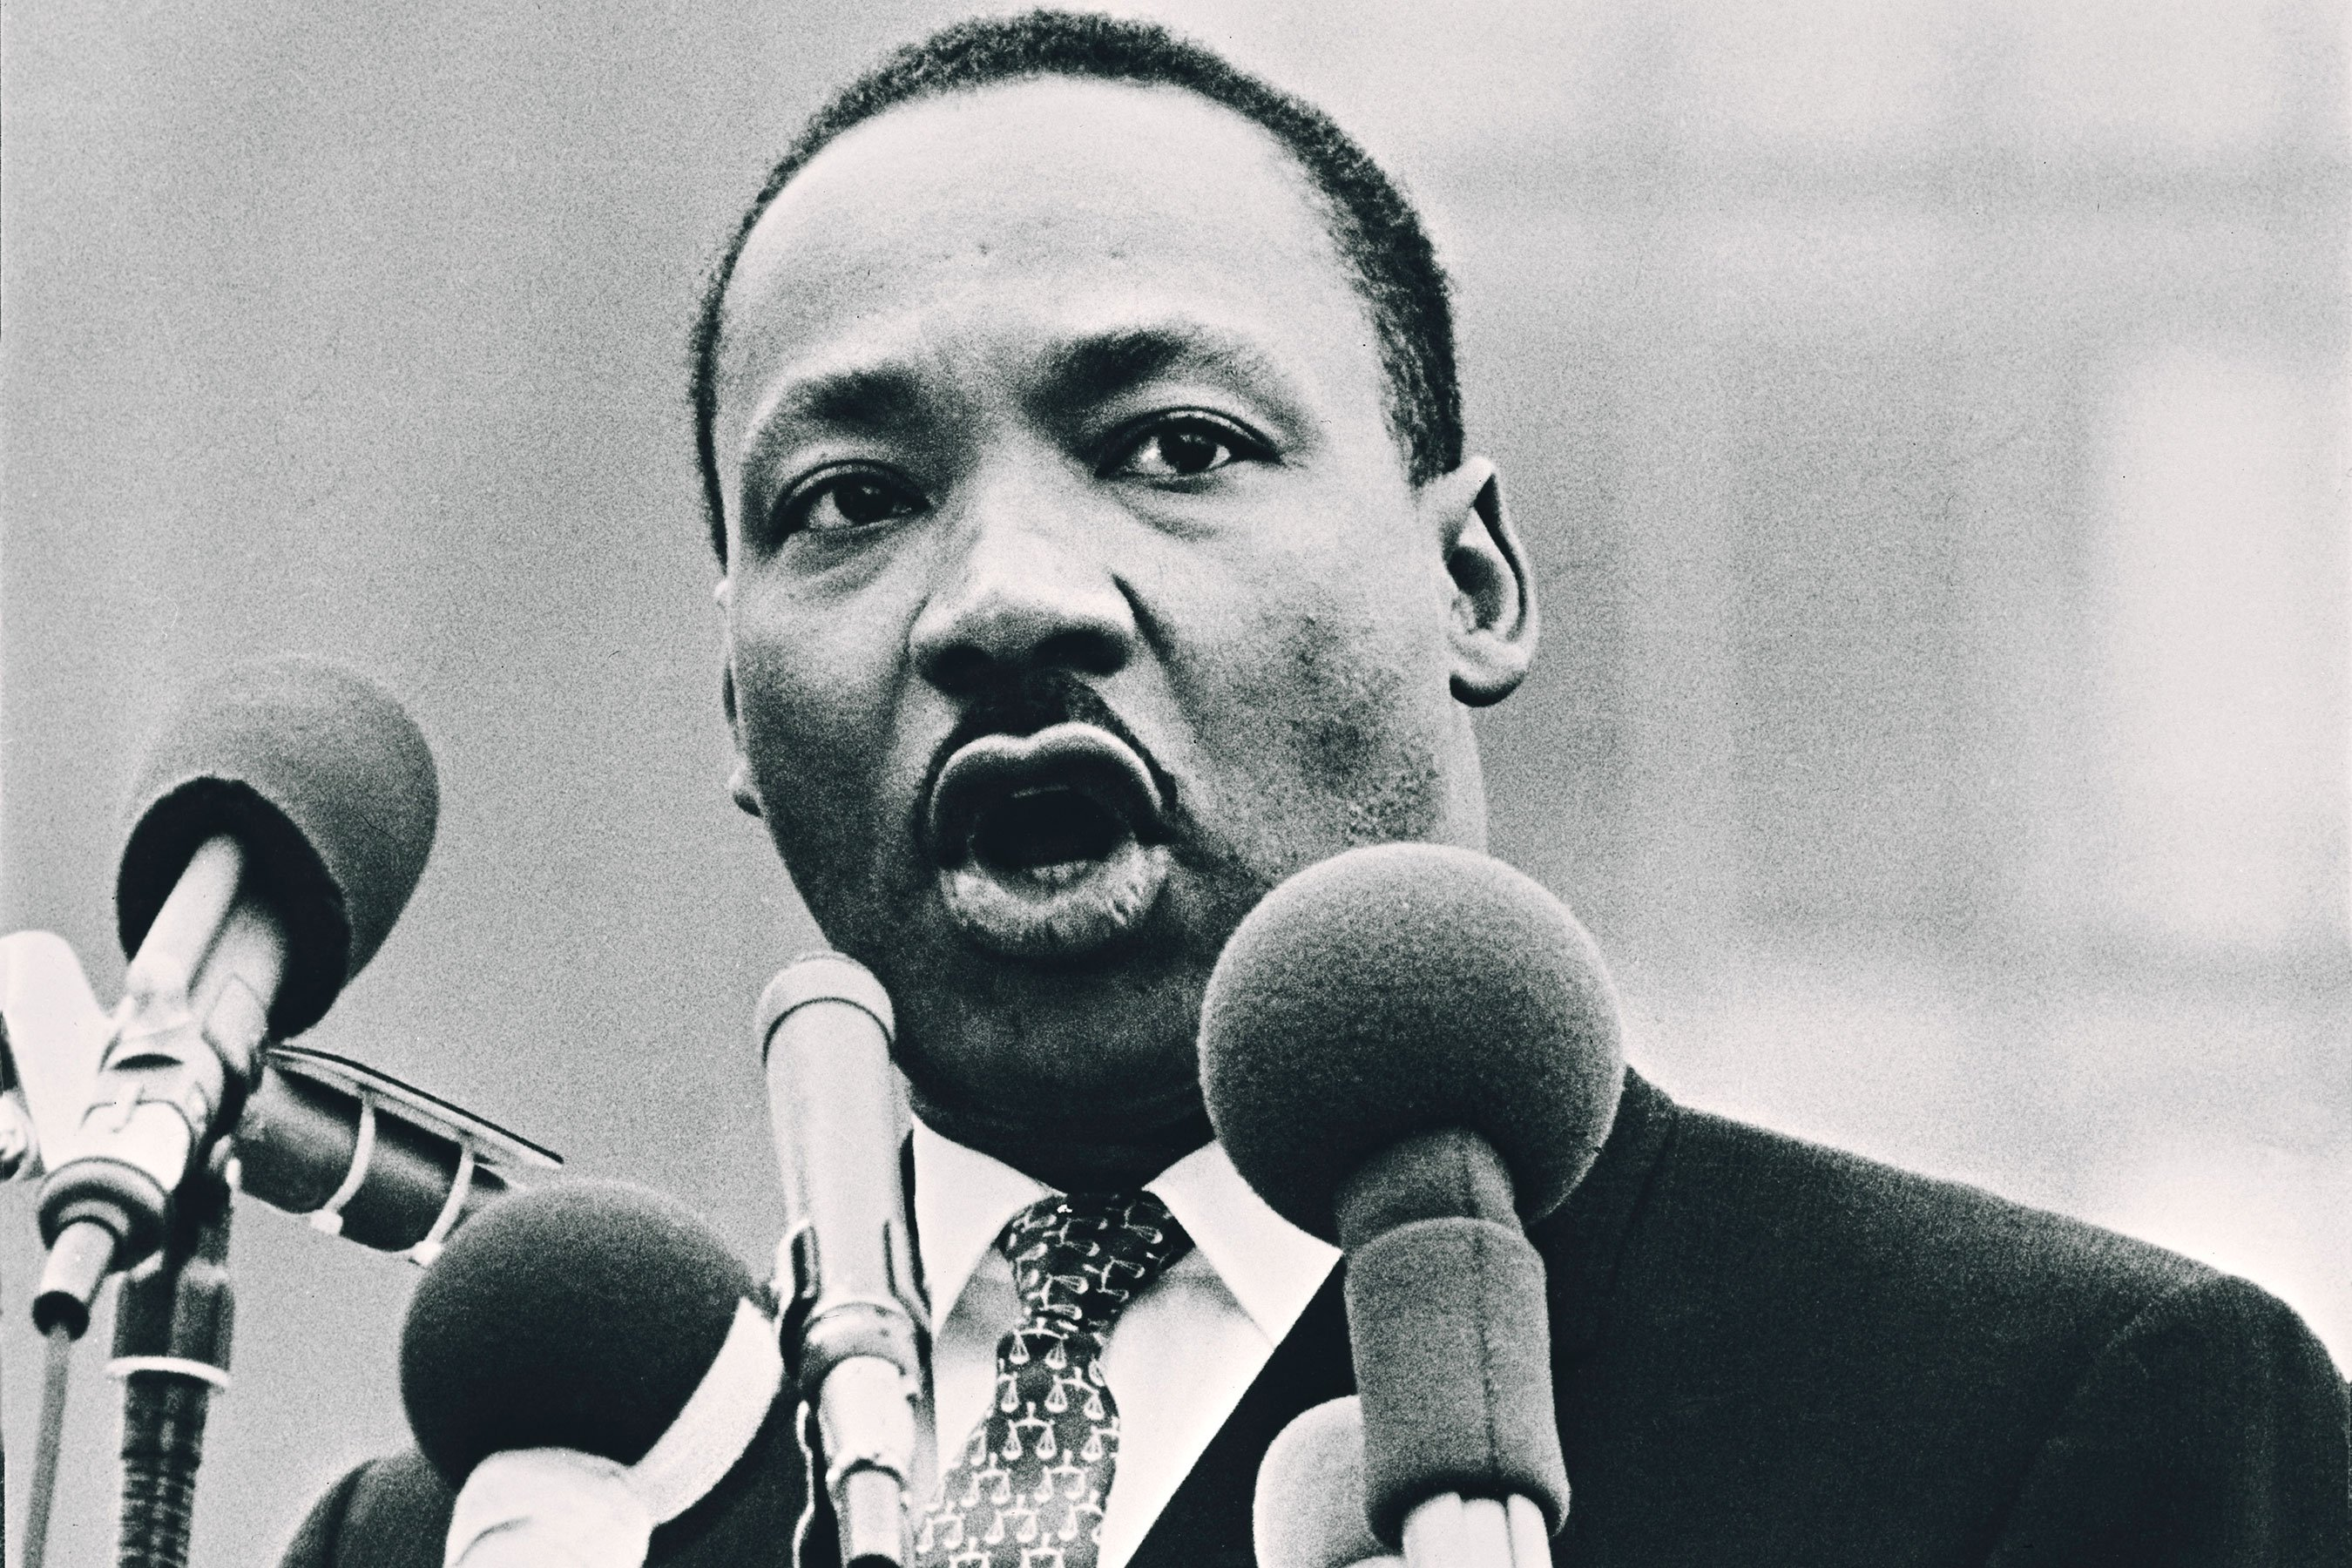 Celebrities honor Martin Luther King Jr. Day